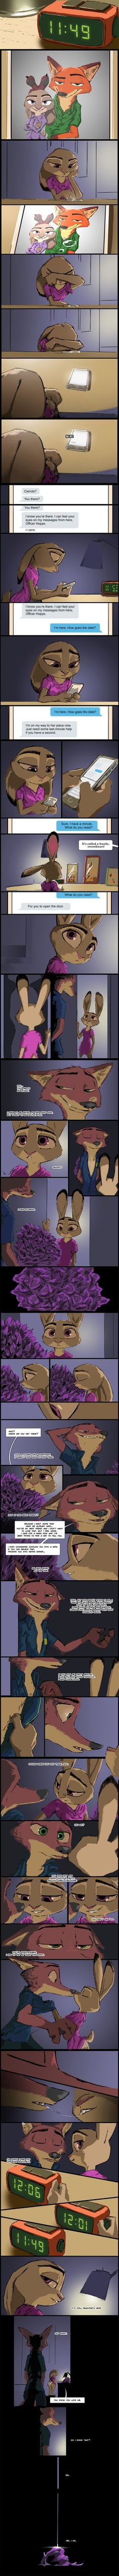 Zootopia: Purple Tulips (2/2) by TheWyvernsWeaver